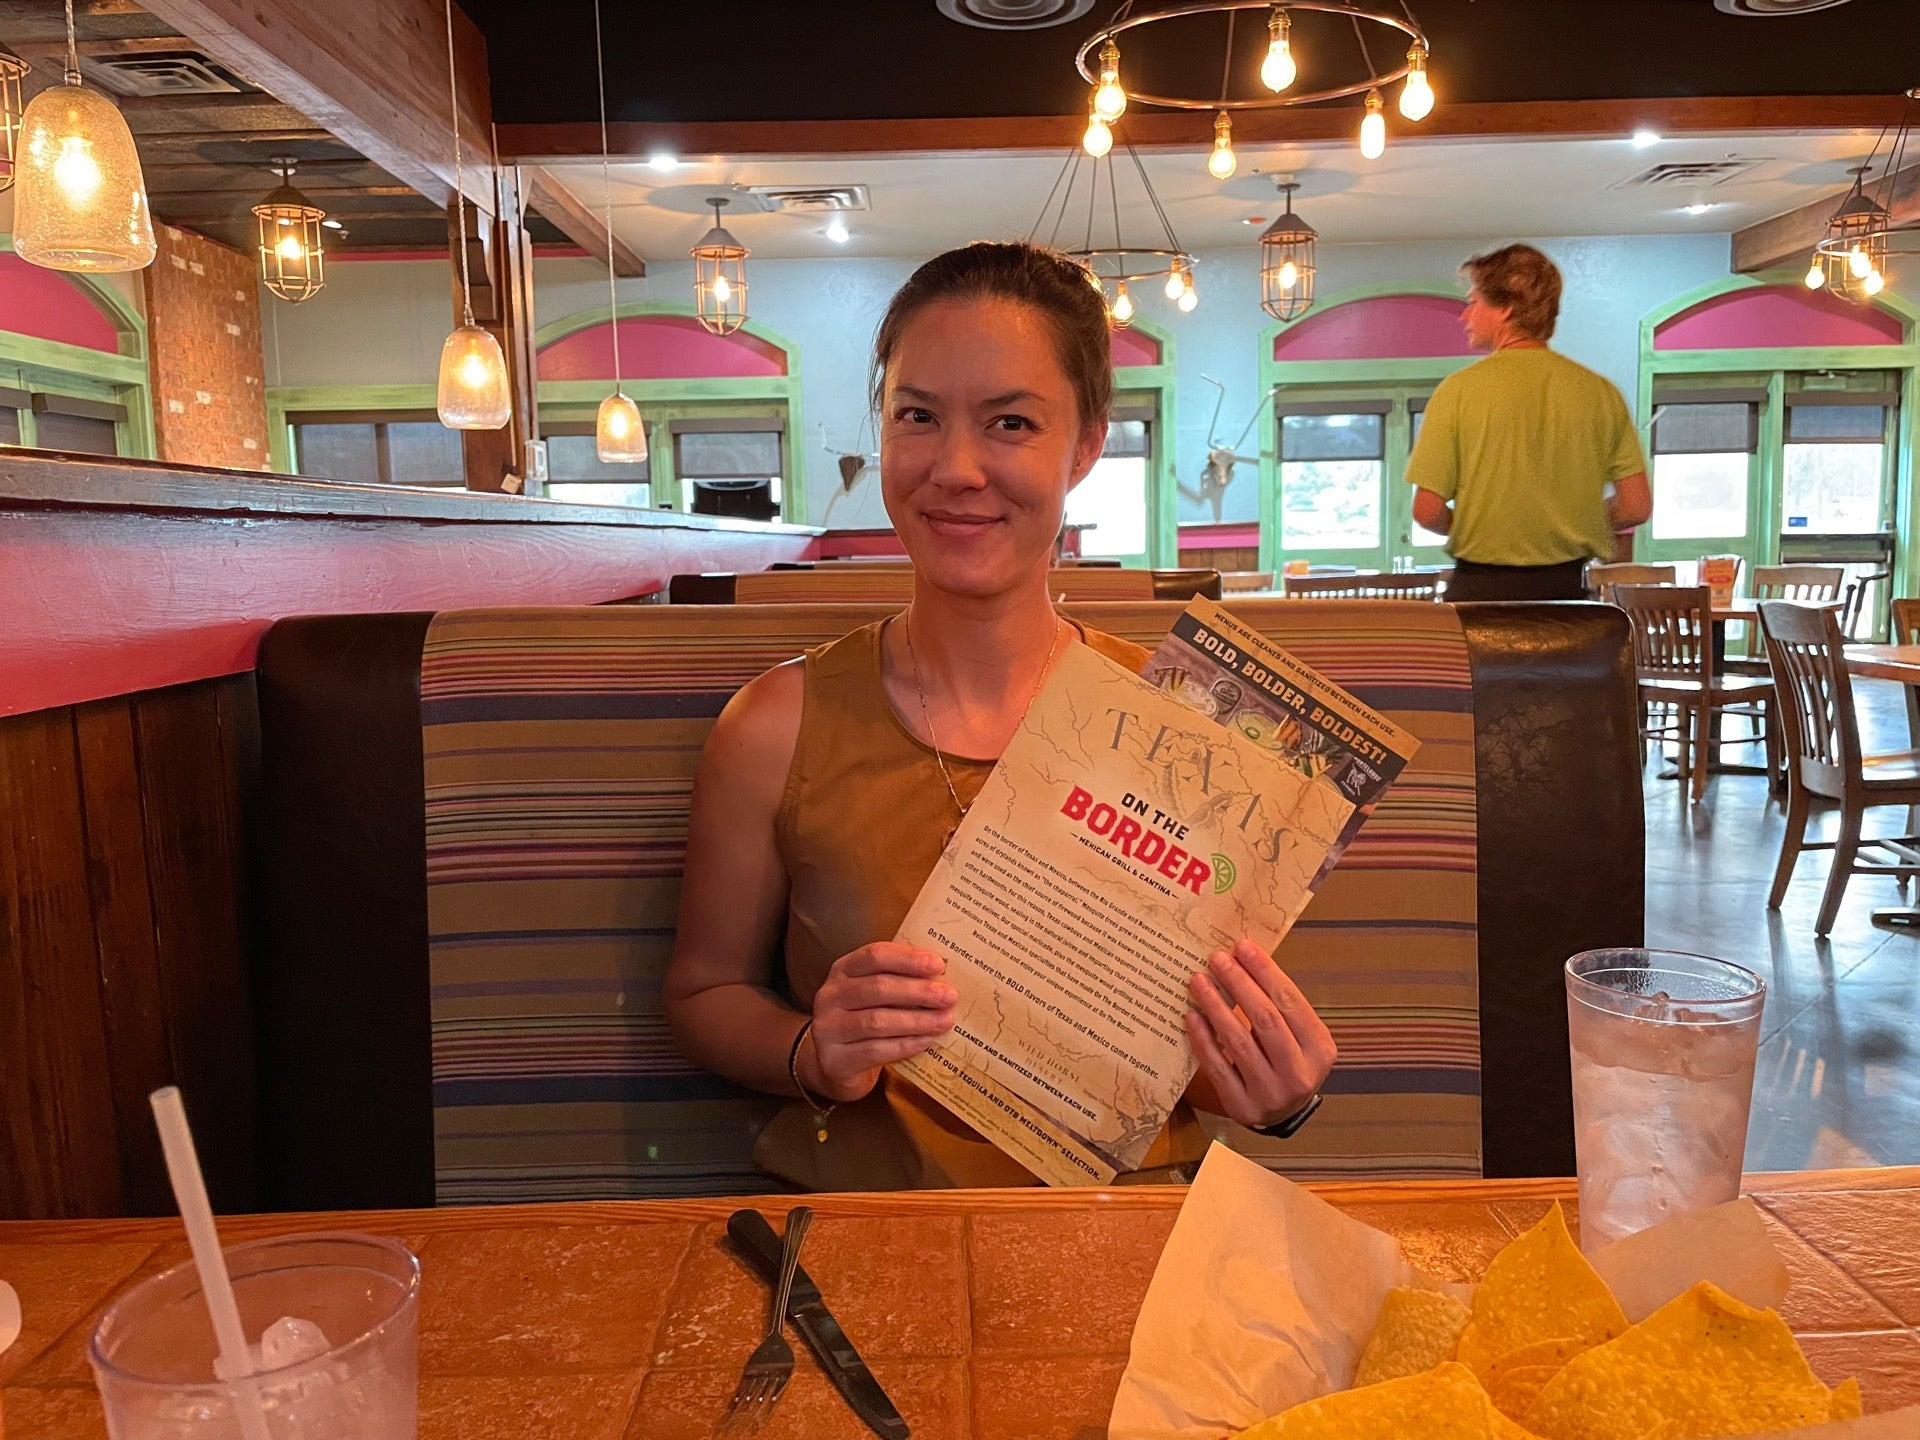 Checked in at On The Border Mexican Grill & Cantina